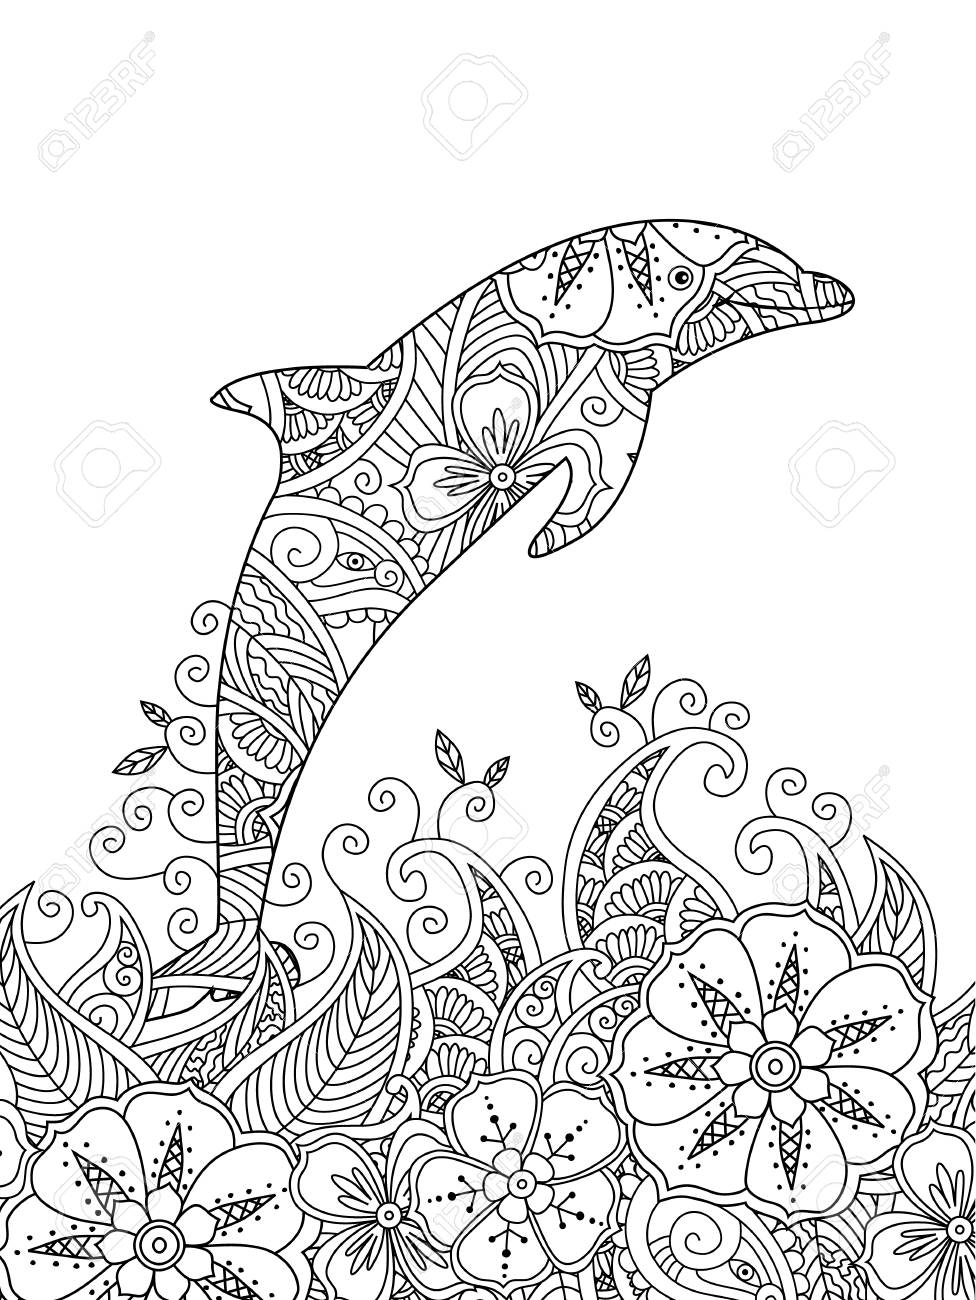 976x1300 Coloring Page With One Jumping Dolphin In The Sea. Vertical